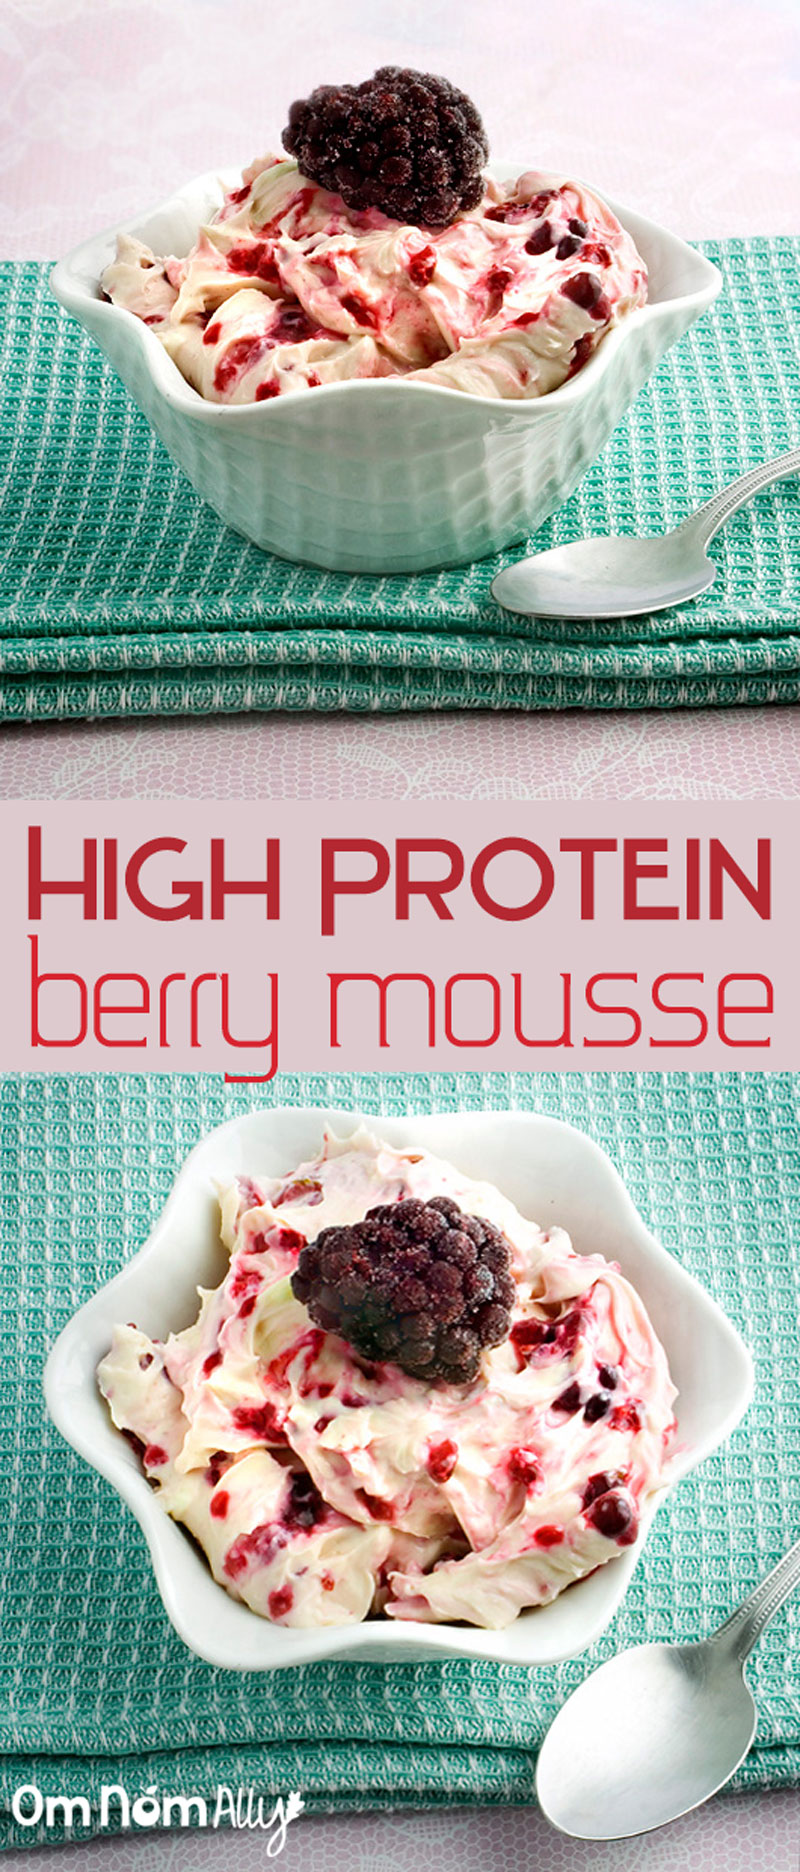 High Protein Berry Mousse @OmNomAlly made with protein-rich cottage cheese and your favourite fresh or frozen berries!